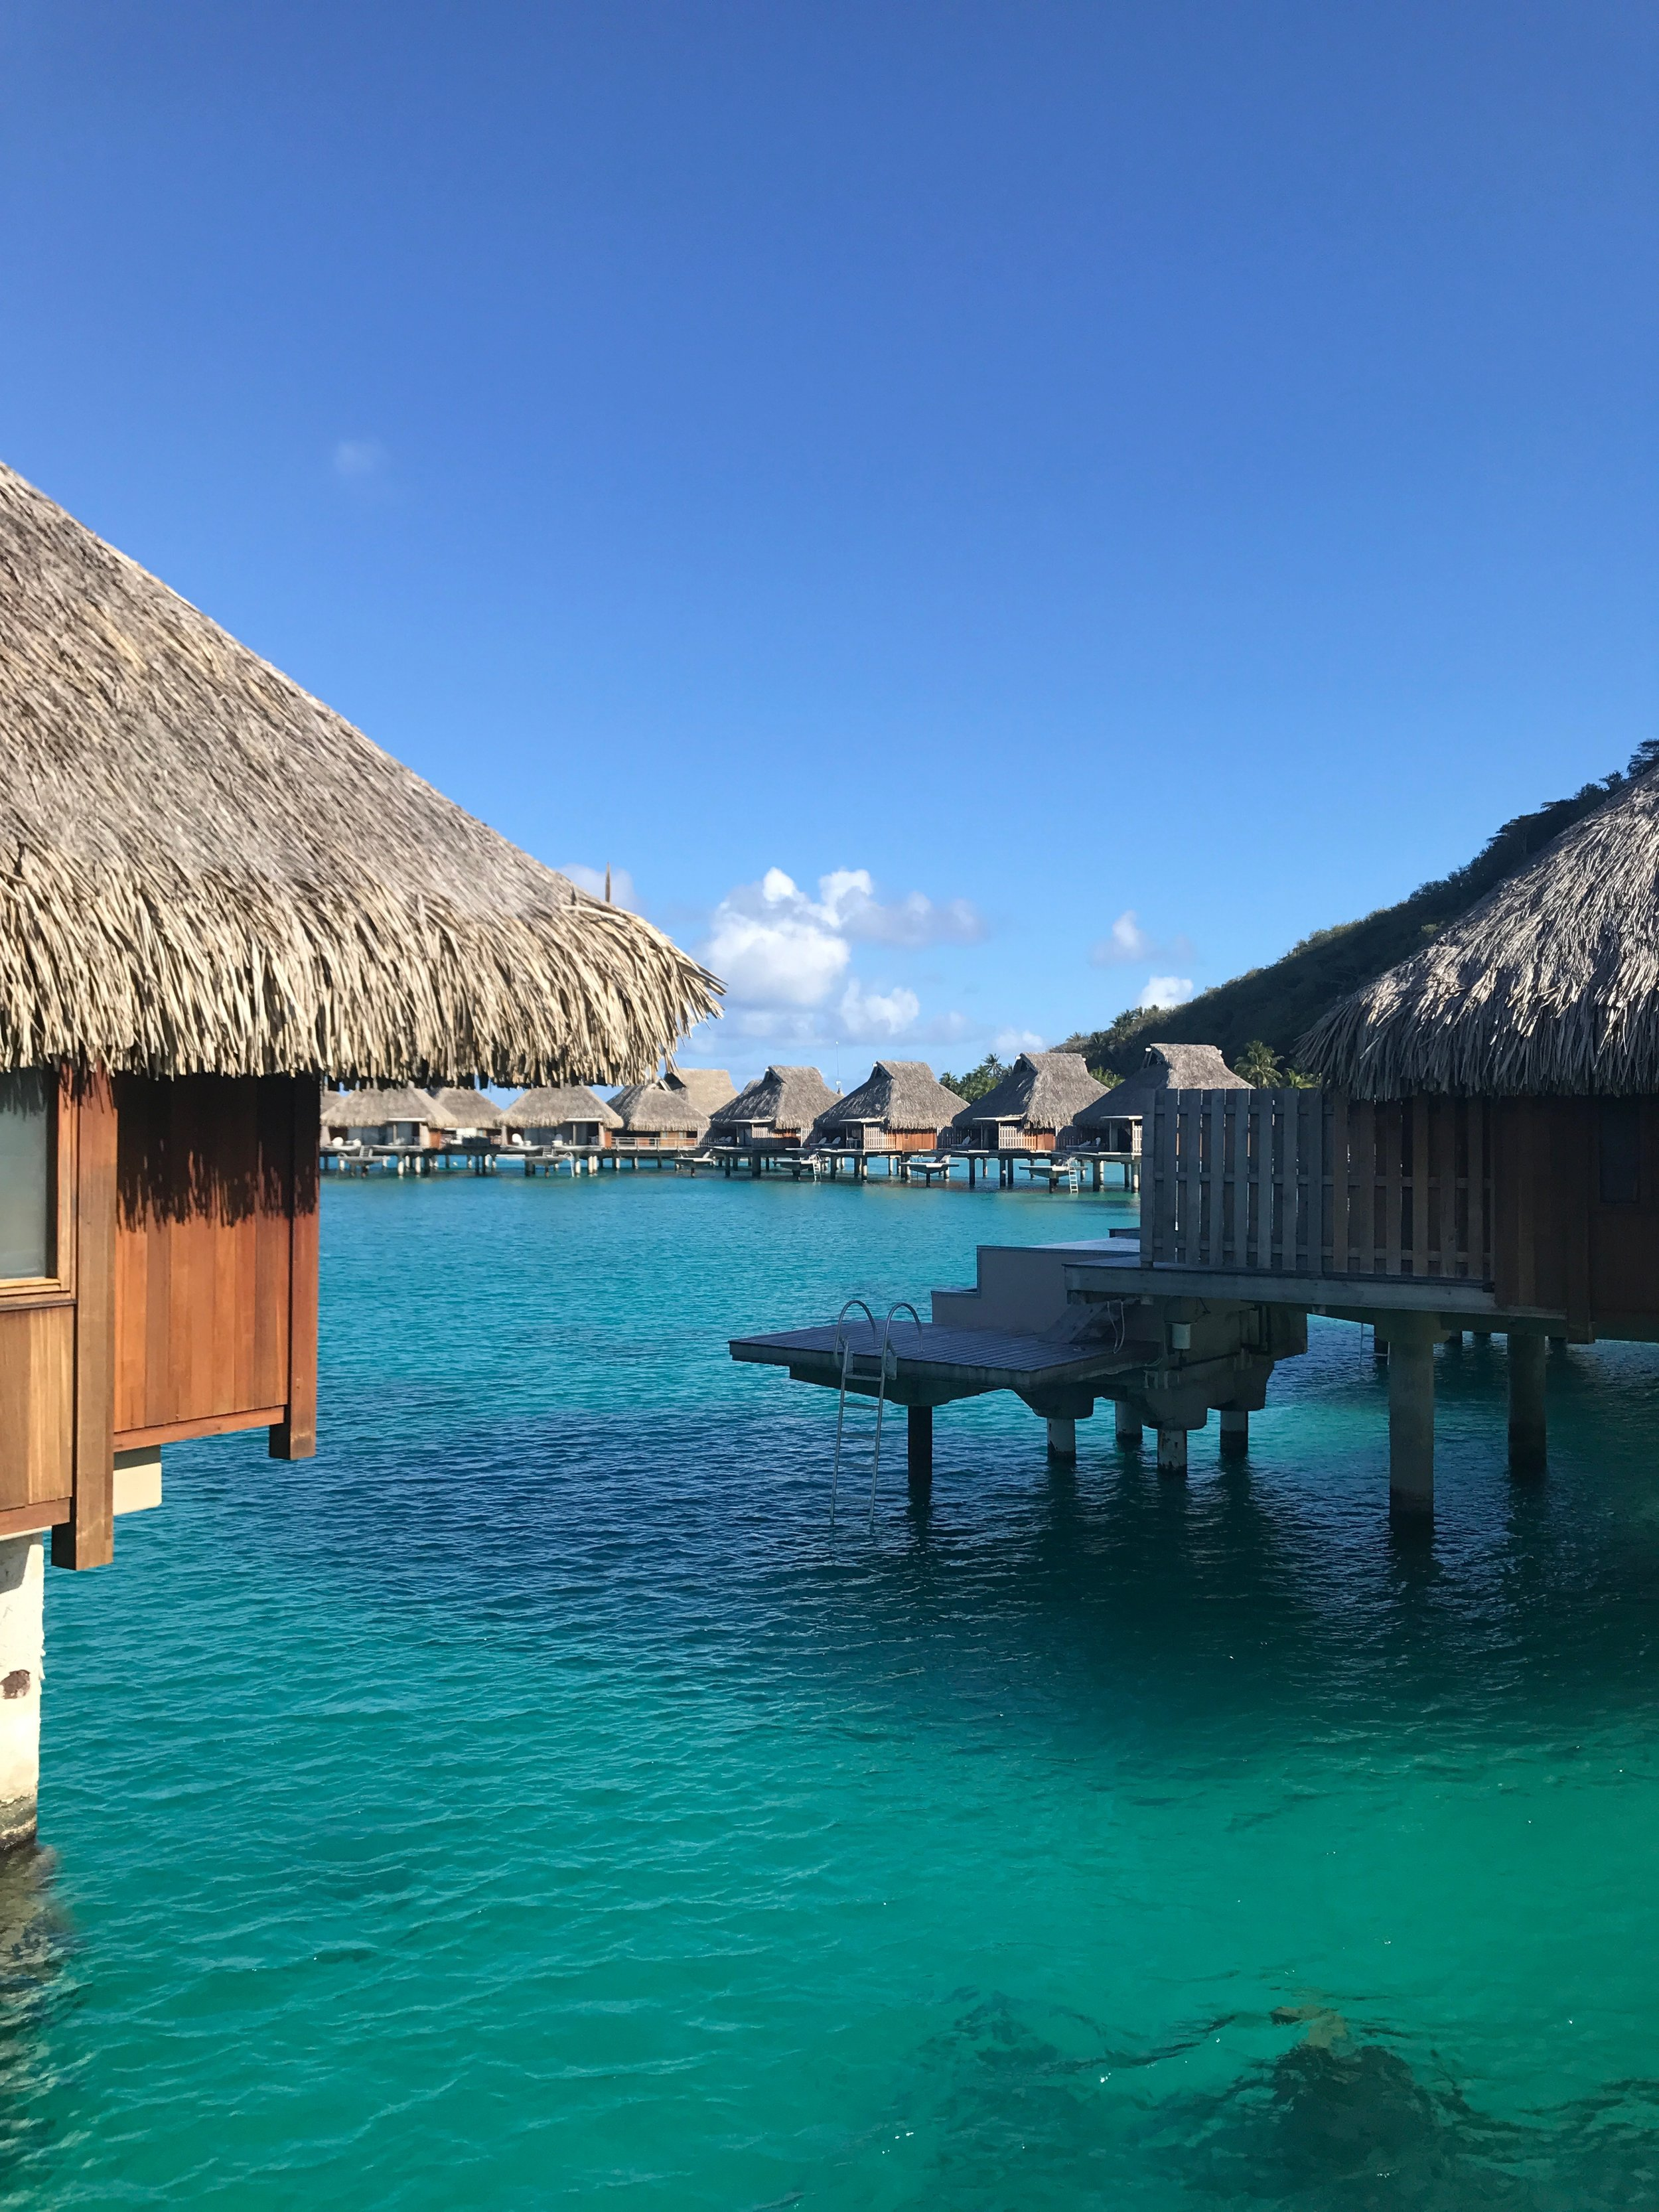 Be sure to look down when you pass by your neighbors, there is usually a lot of fish swimming in the lagoon below each villa. The water is clear enough for you to see the bottom if relatively shallow